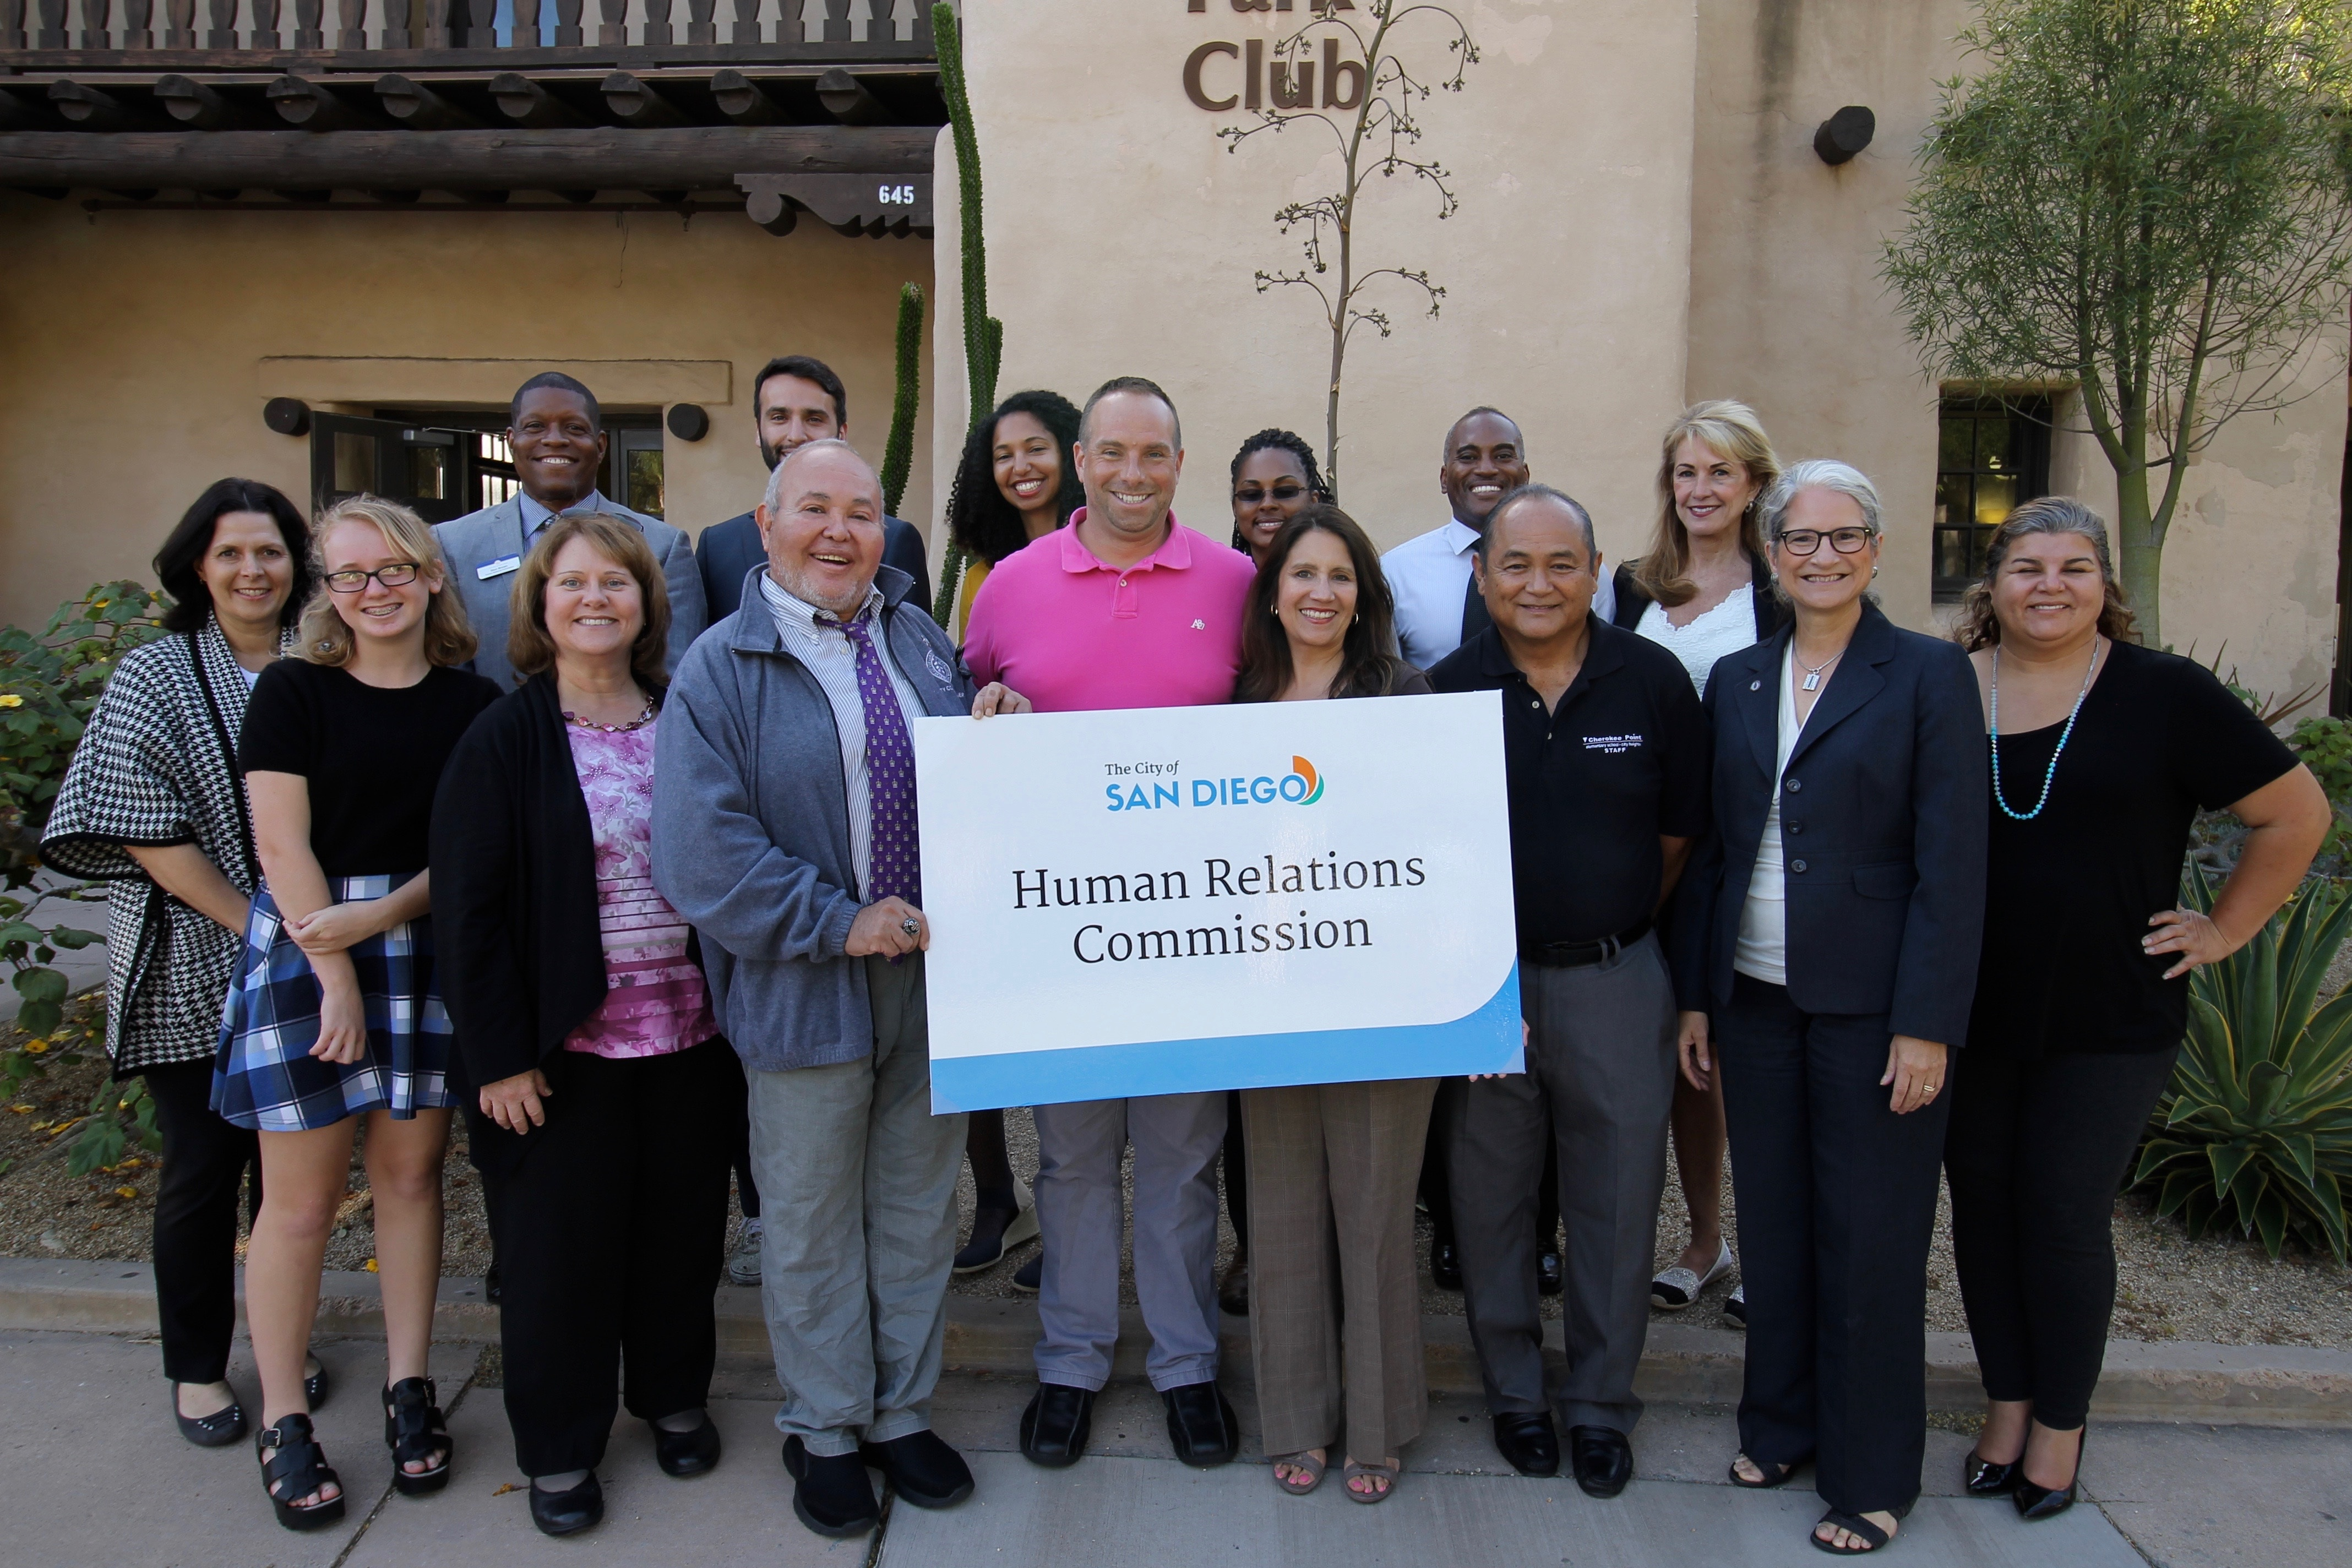 San Diego Human Relations Commission Group Photo